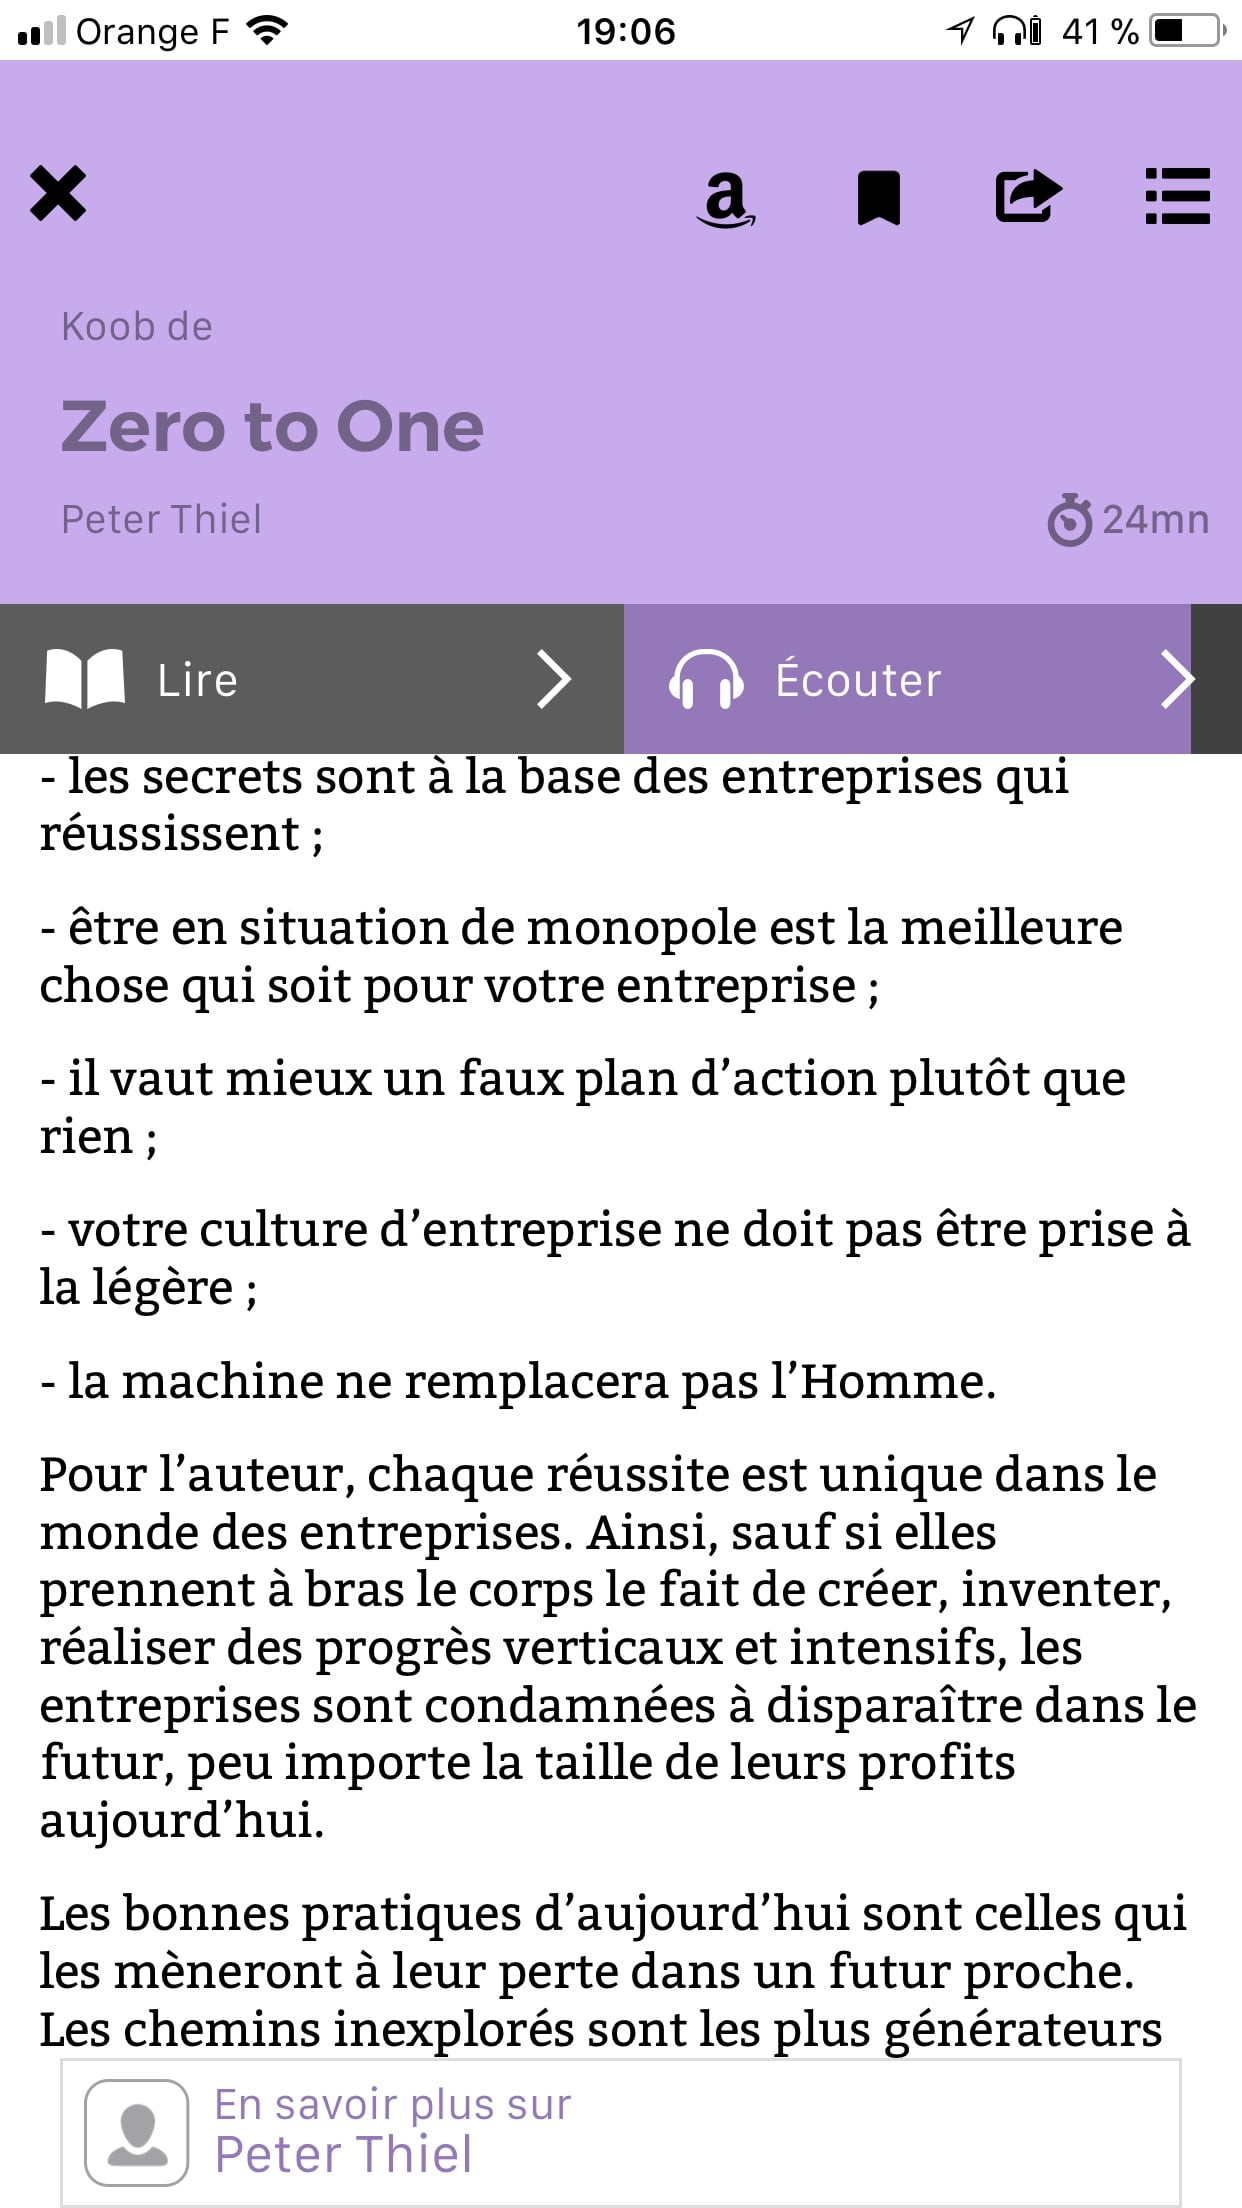 L'interface de l'application iPhone - Choix du type de lecture (texte ou audio)